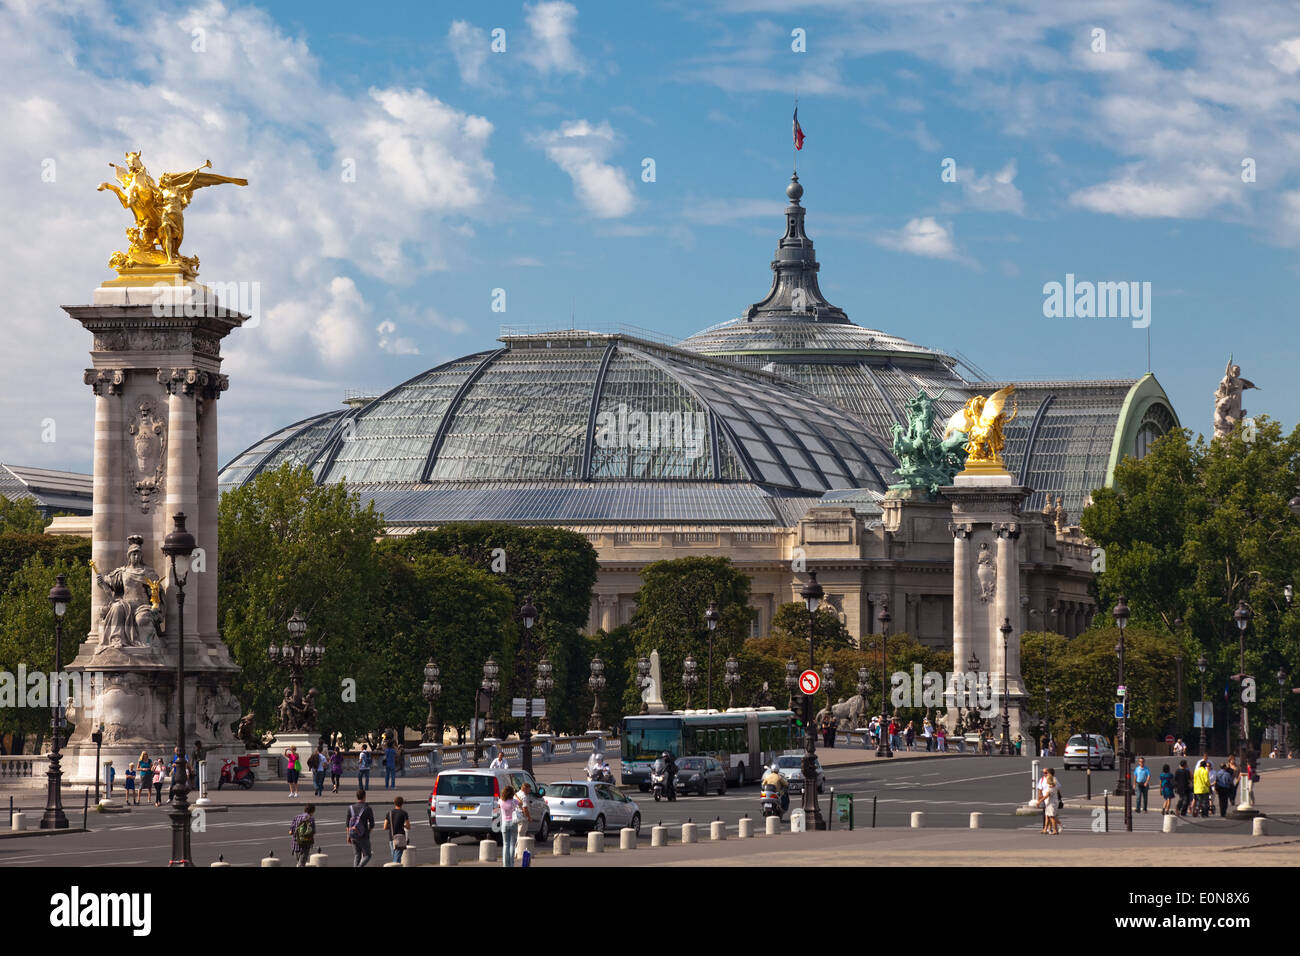 Grand Palais in Paris, Frankreich - Grand Palais and Pont Alexandre III in Paris, France - Stock Image